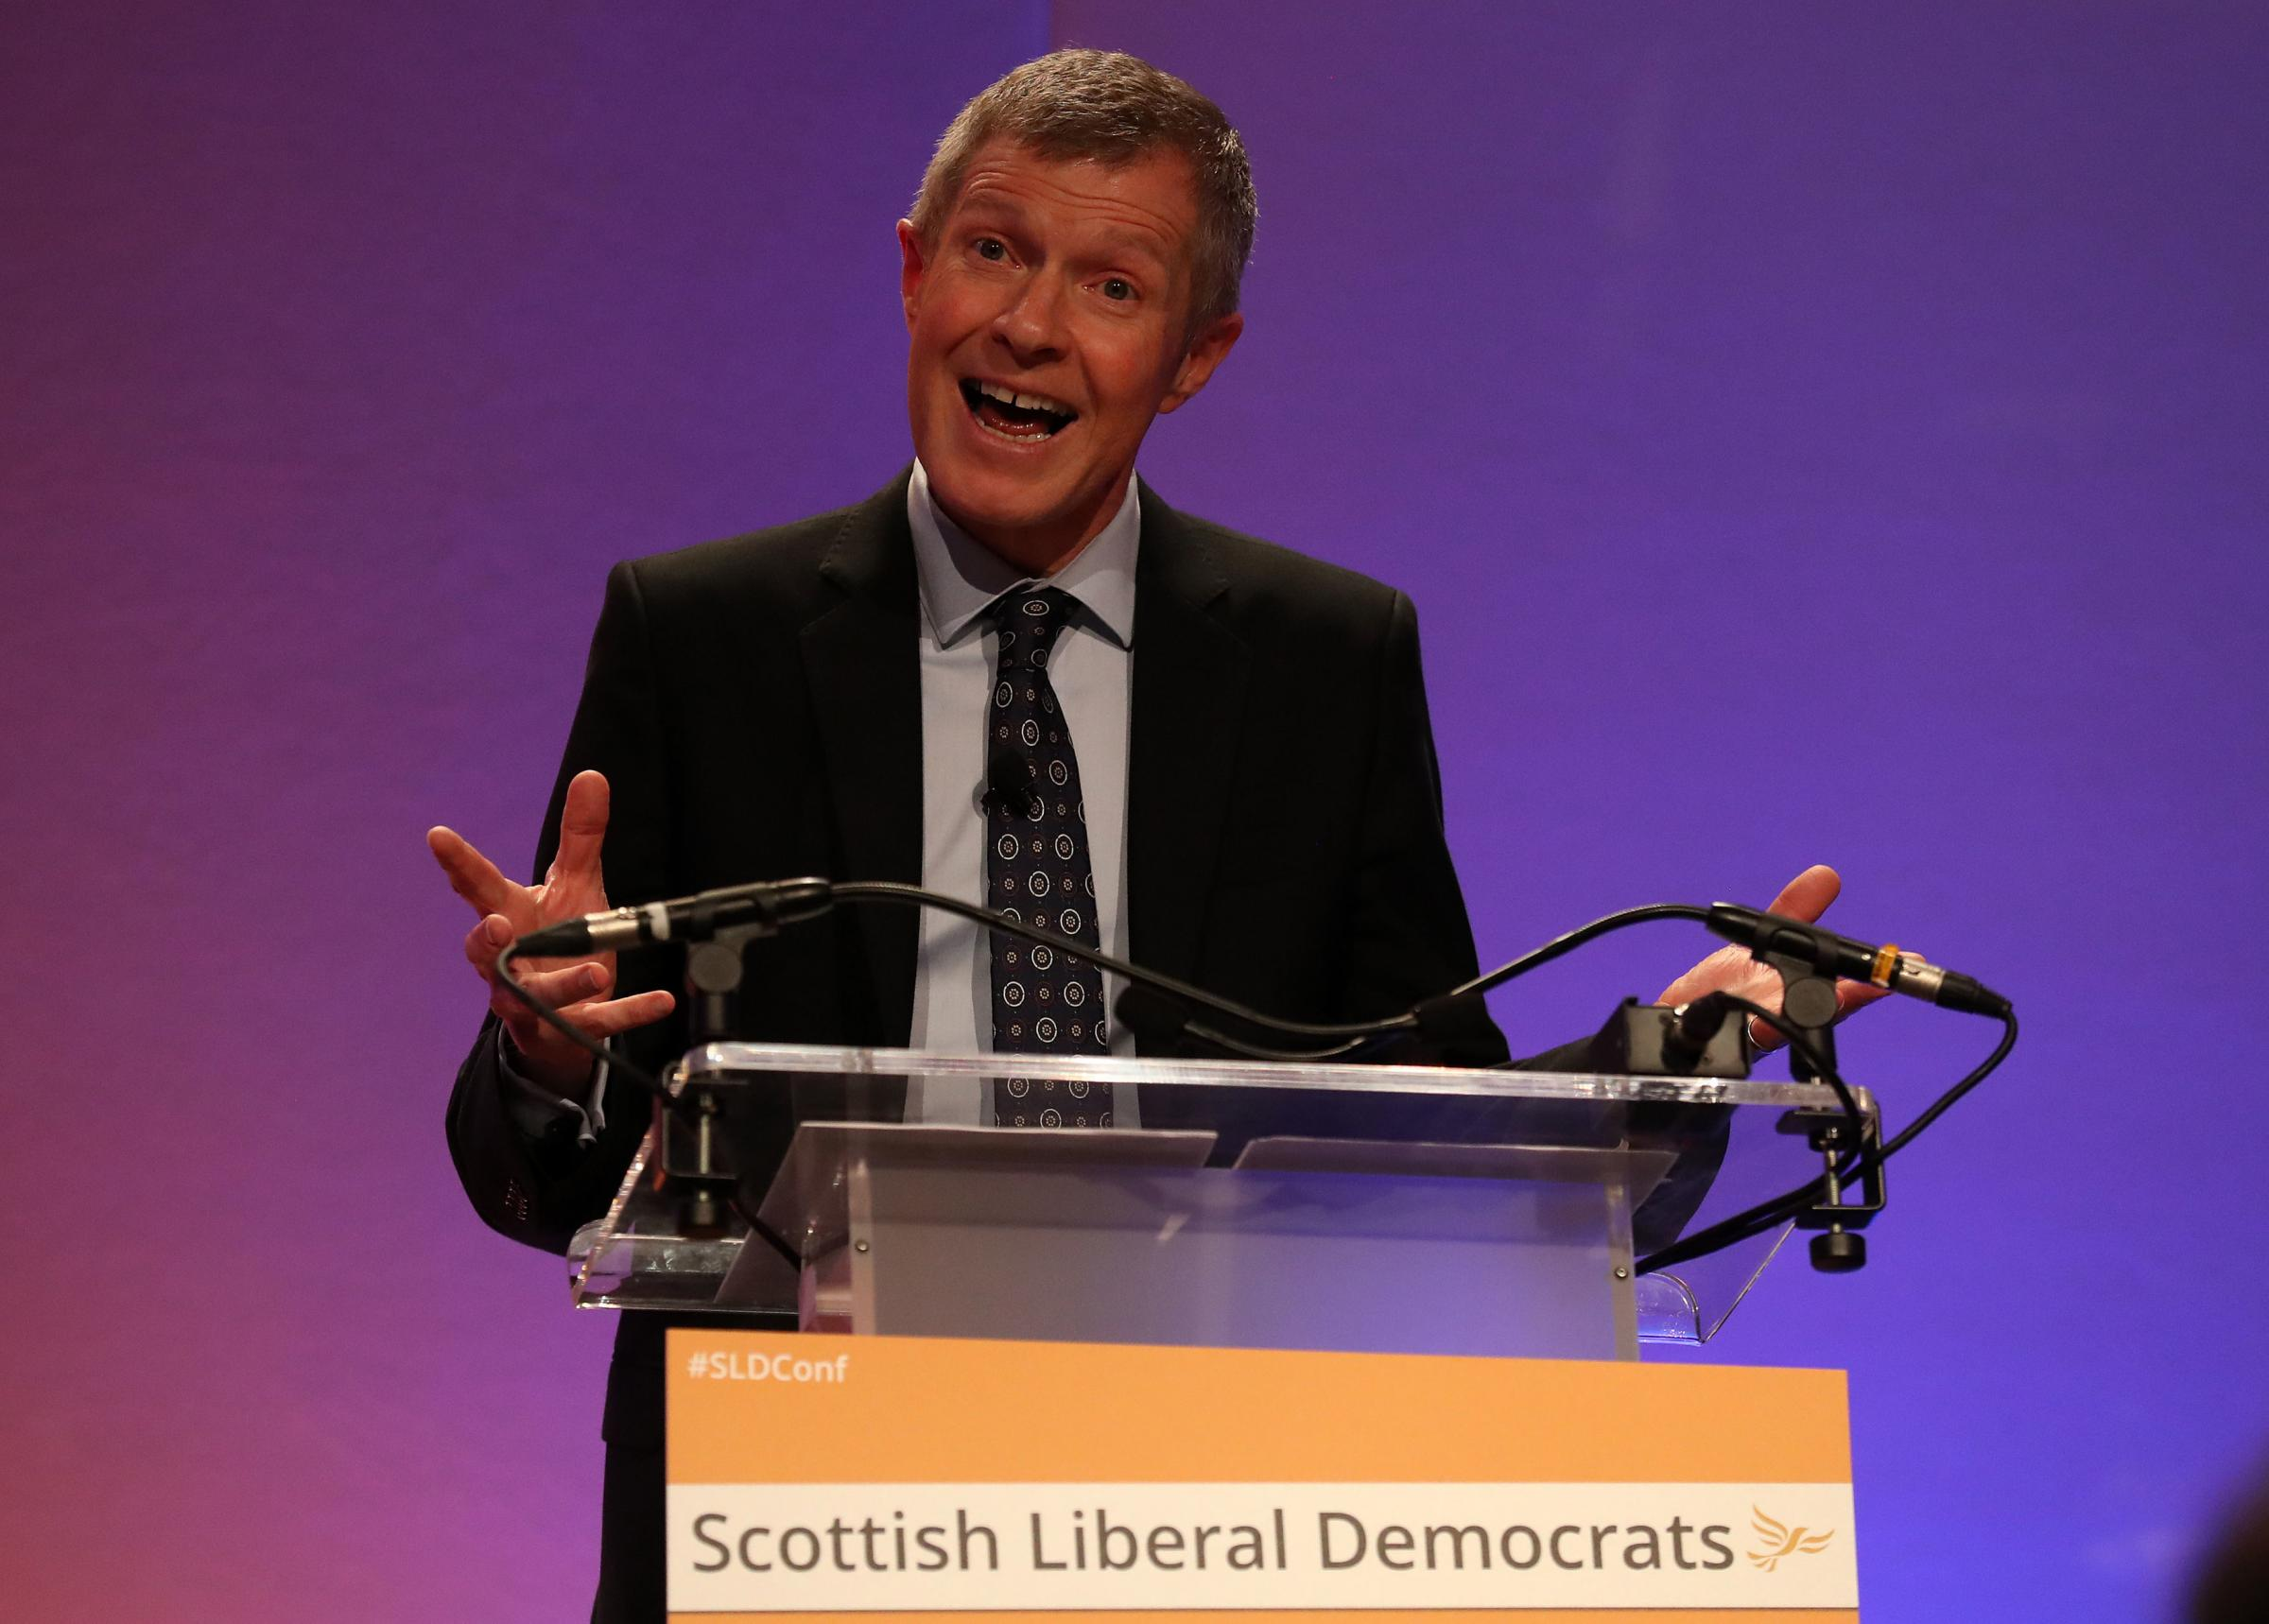 Willie Rennie urges Scots to reject both Boris Johnson and independence